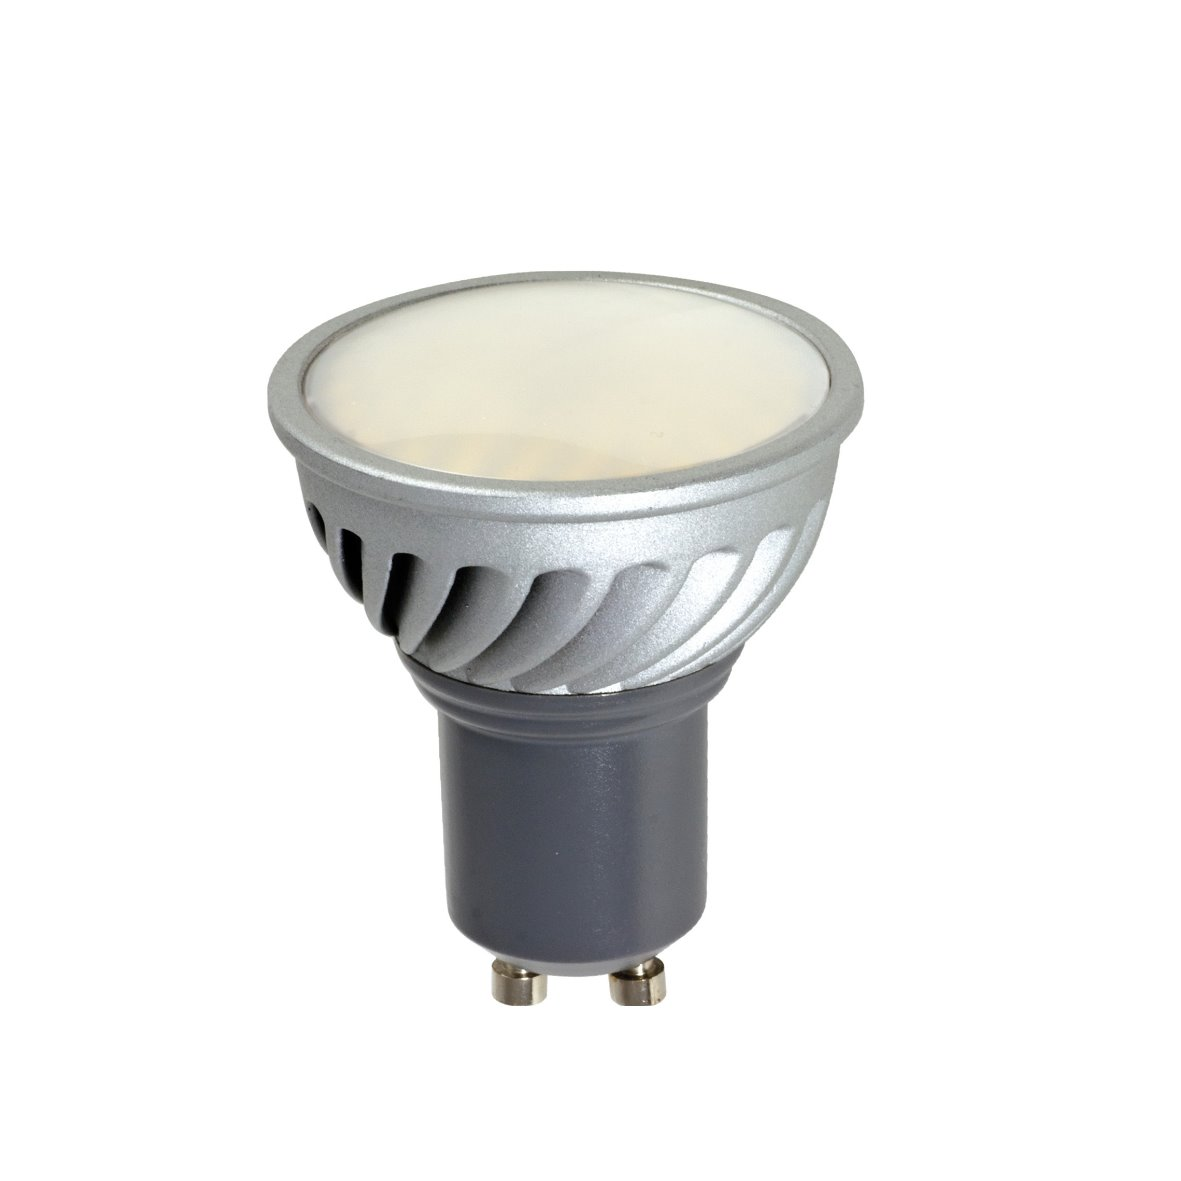 heitronic led spot 70er smd dimmable frosted glass bulbs